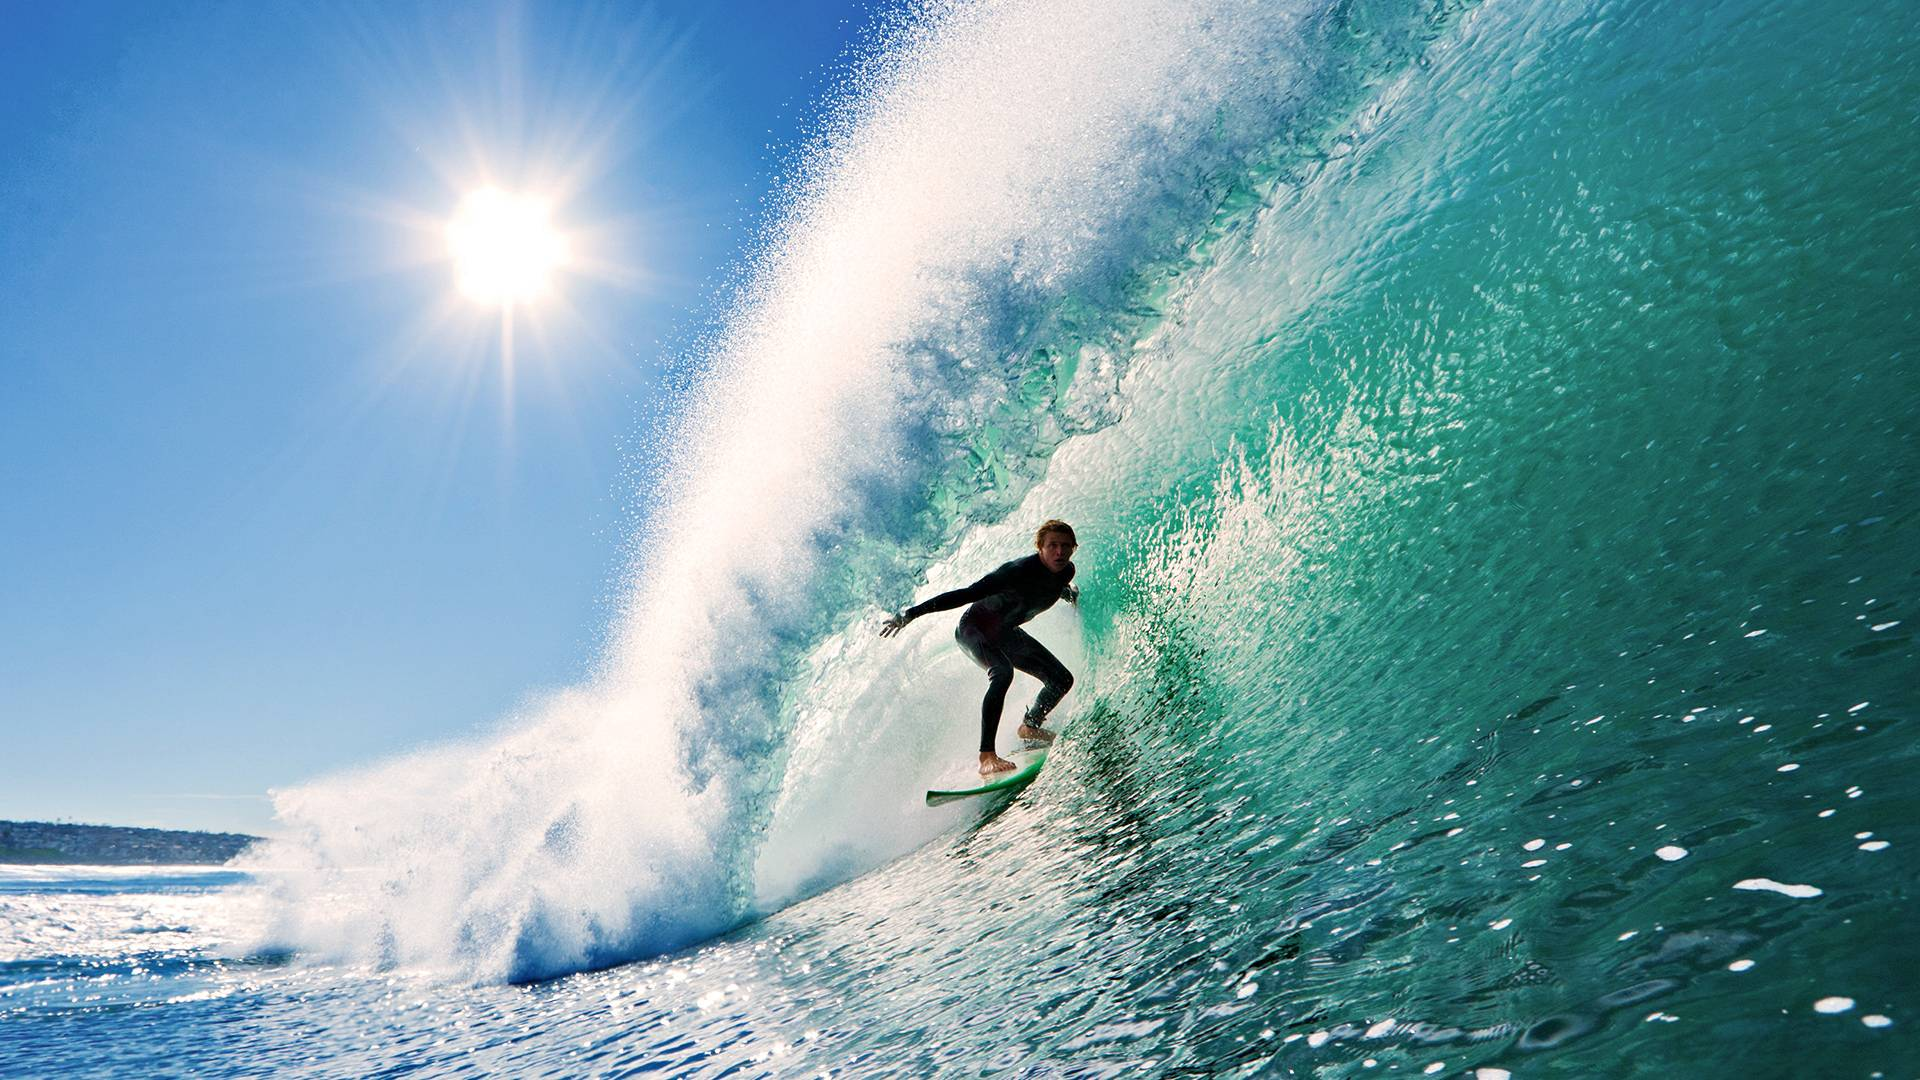 Surf hd wallpaper animaxwallpaper hd surfing wallpapers wallpaper cave voltagebd Choice Image